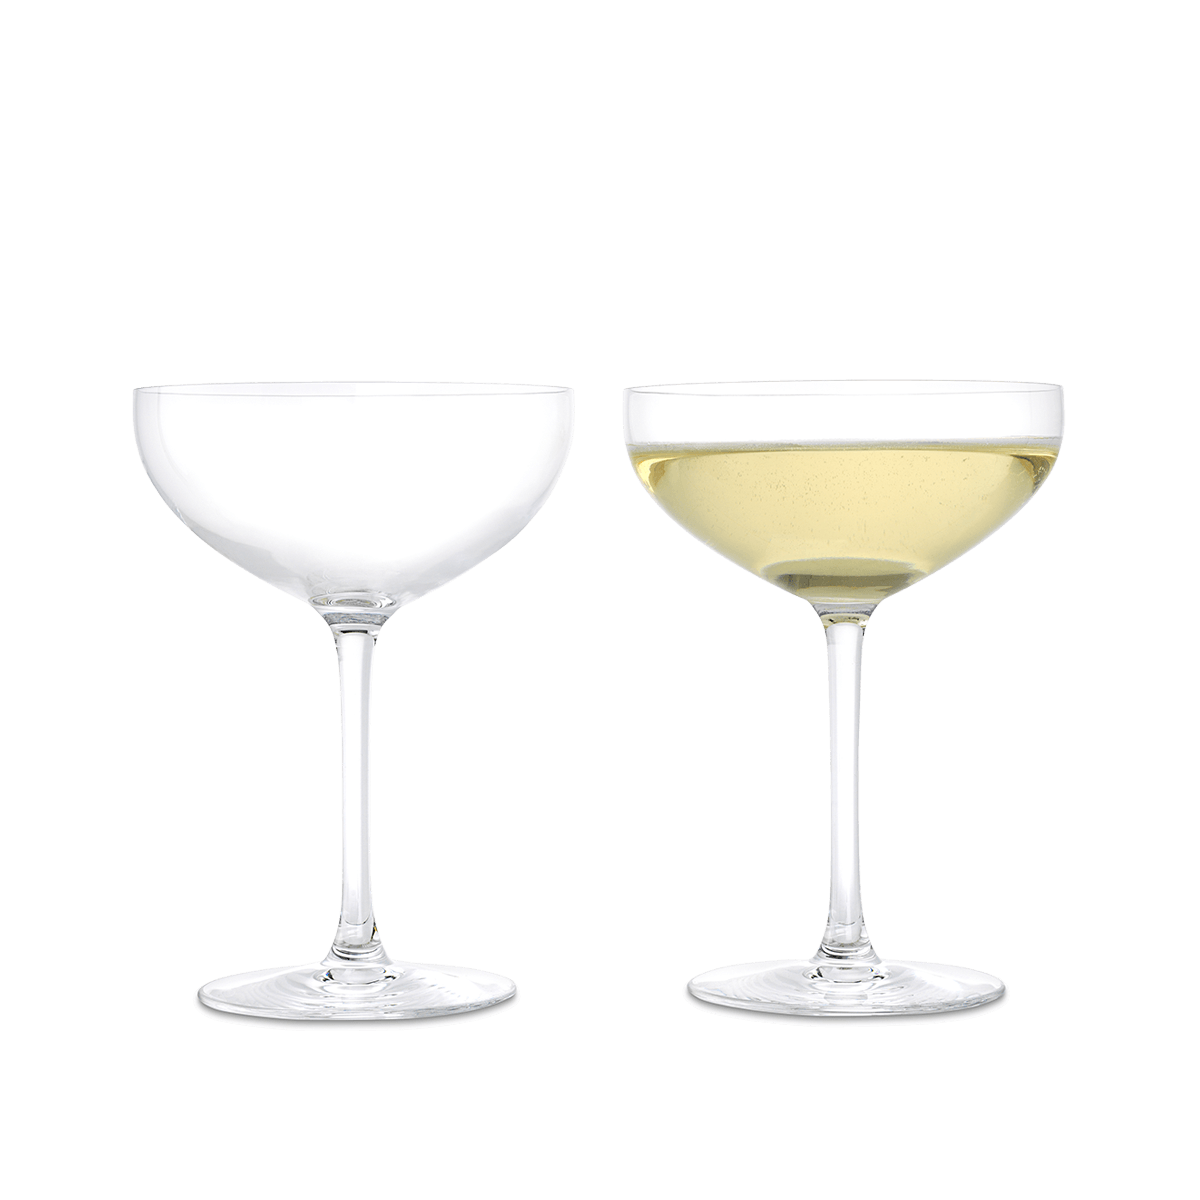 Champagner Glas Premium Set Of Two Champagne Glasses